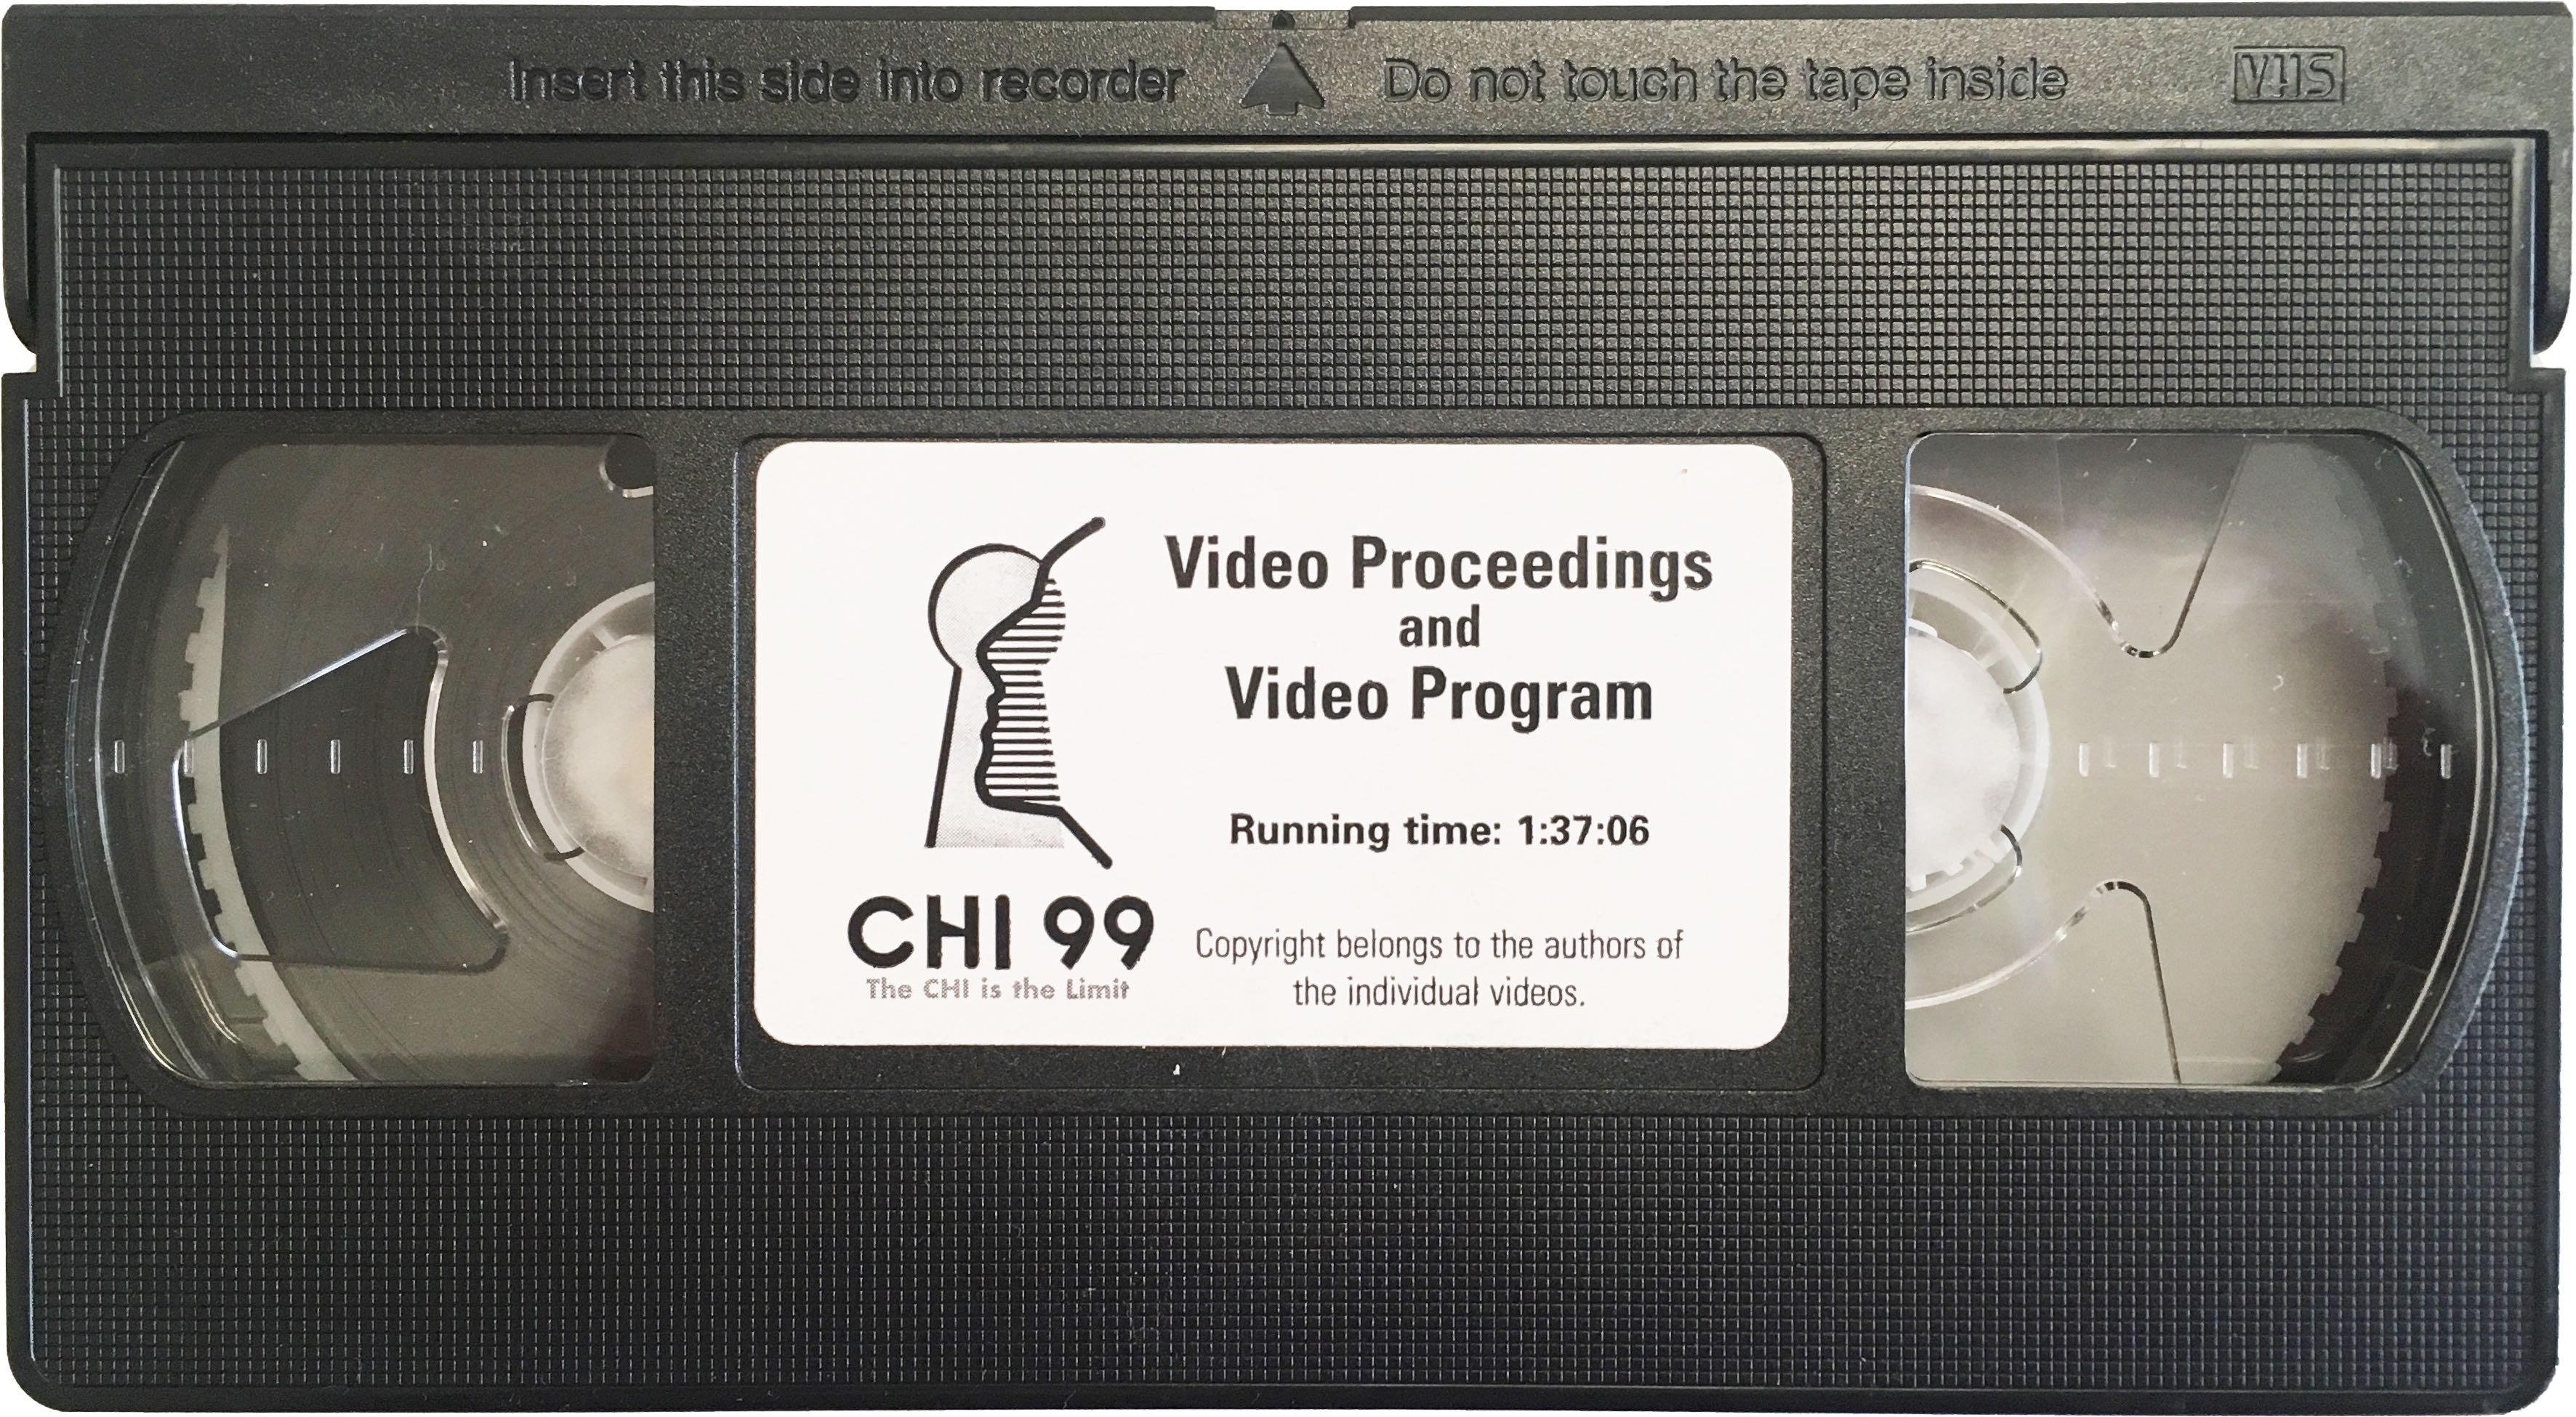 A video tape cassette (analog). This was a norm in 1990's before the advent of digital technology.